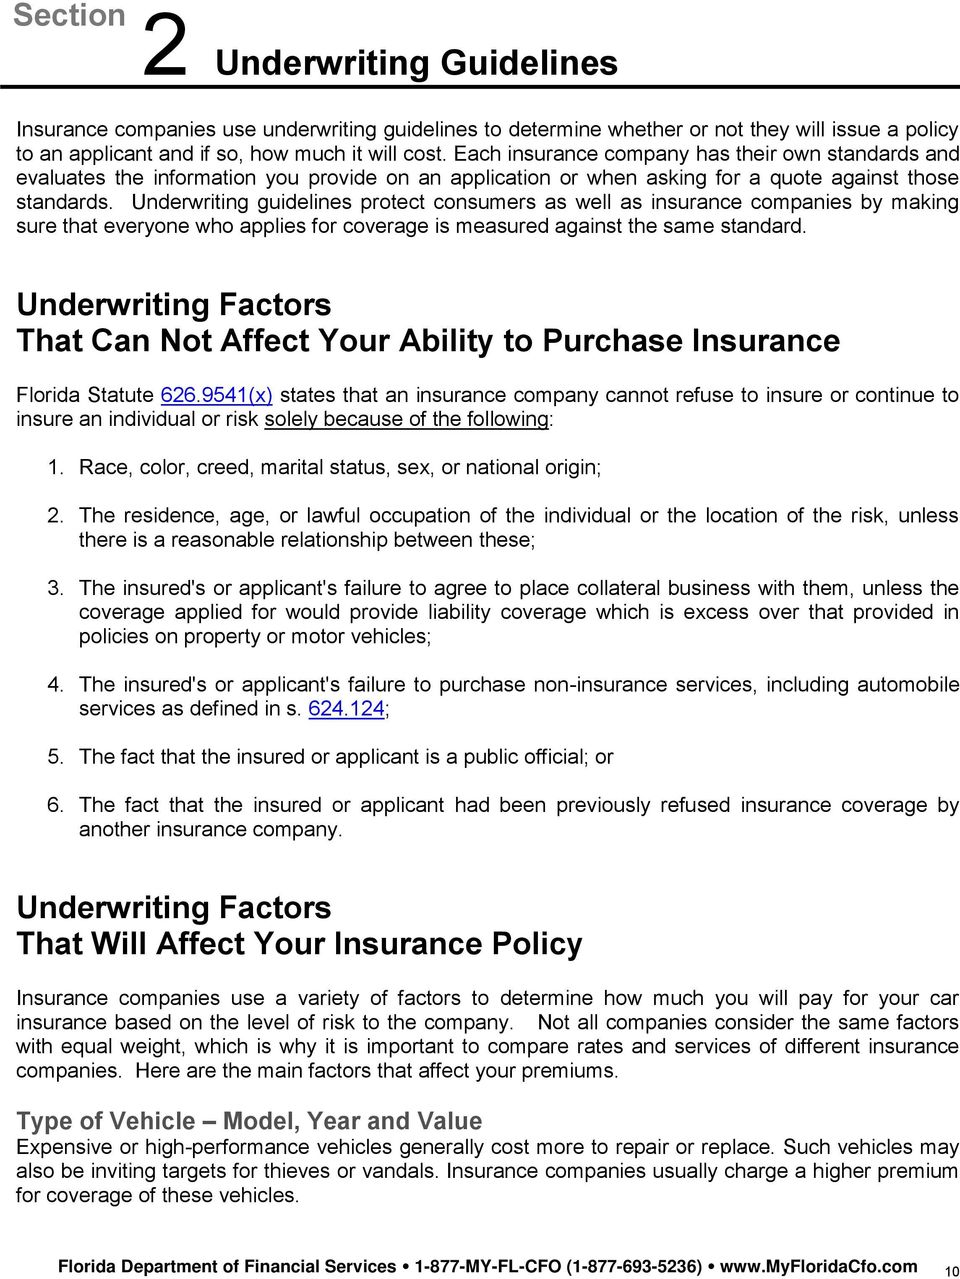 Underwriting guidelines protect consumers as well as insurance companies by making sure that everyone who applies for coverage is measured against the same standard.